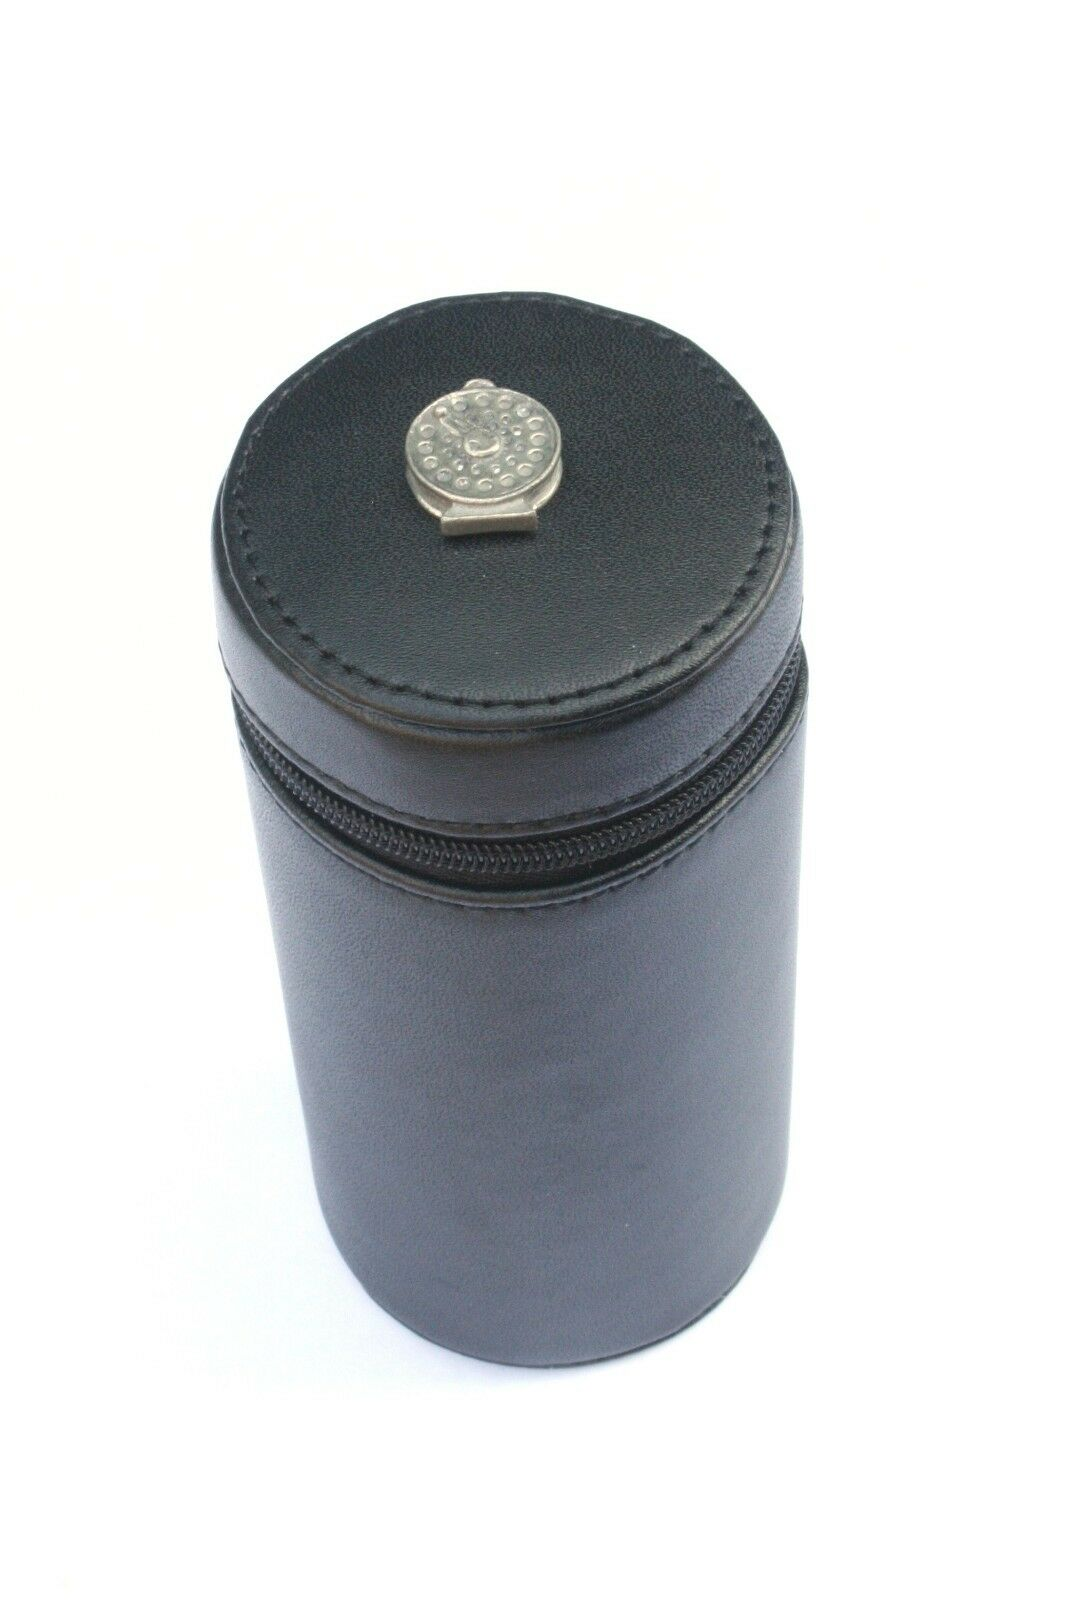 Fly Reel Shooting Peg Position Finder Numberojo Cups 1-10 negro Leather Case